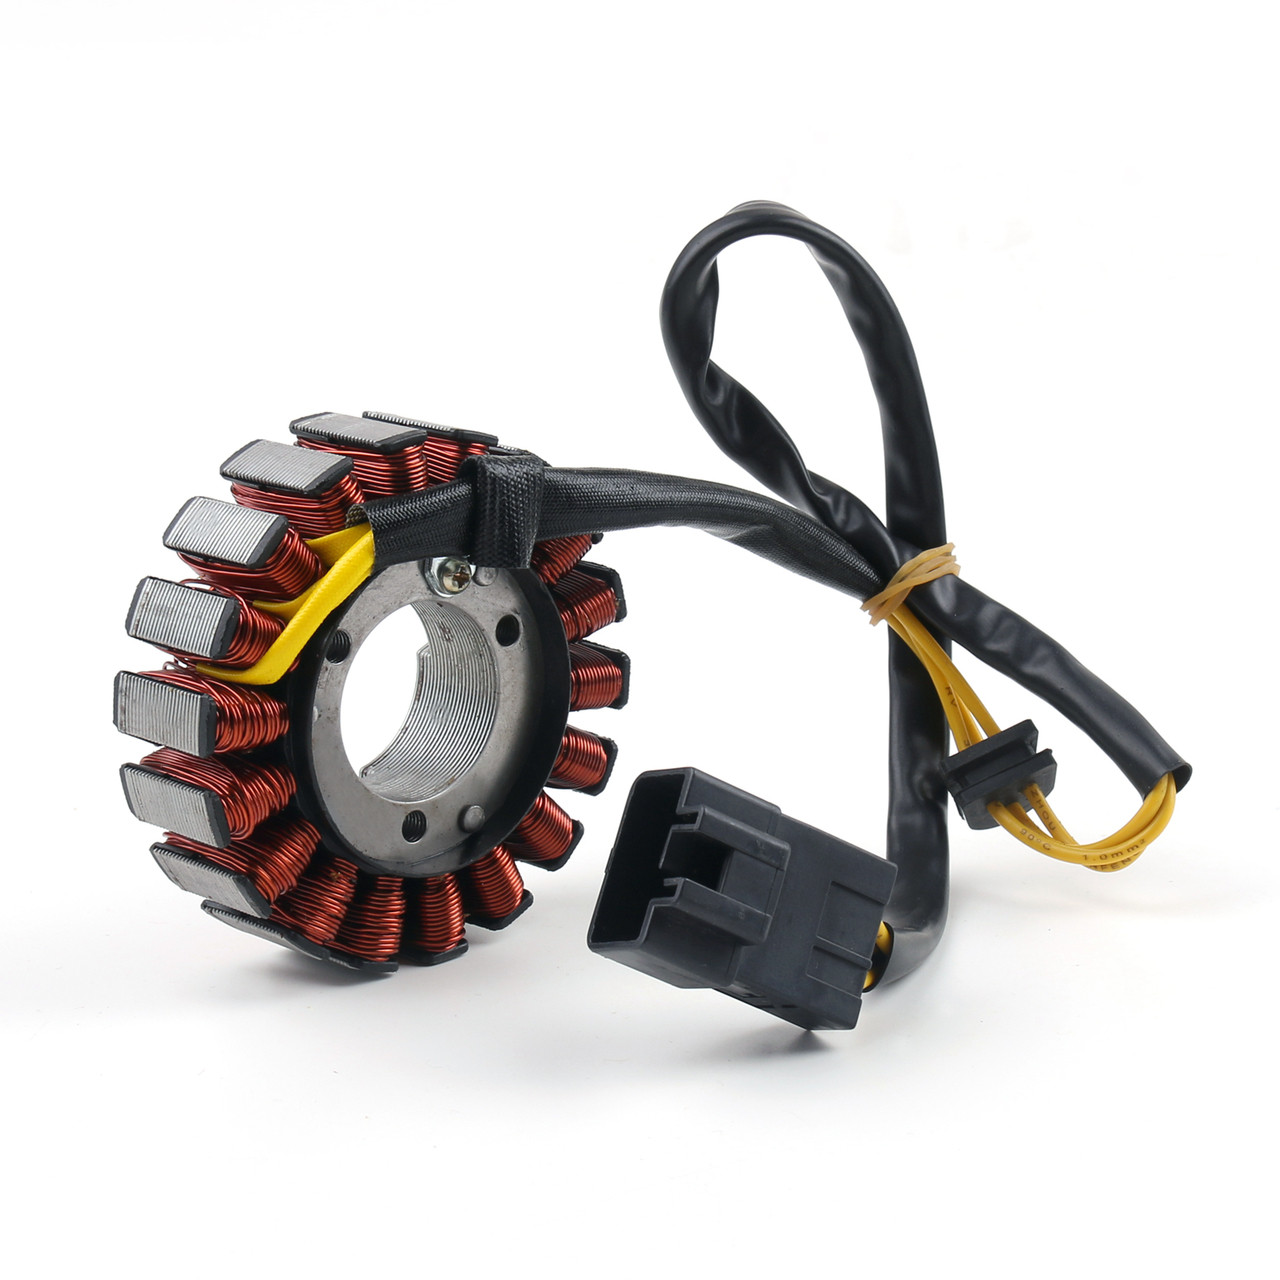 Magneto Engine Stator Generator Coil Honda SH125 SH150 (05-12) PS125 PS150 (06-10) FES150 S-WING (06-12) FES125 S-WING (06-10)